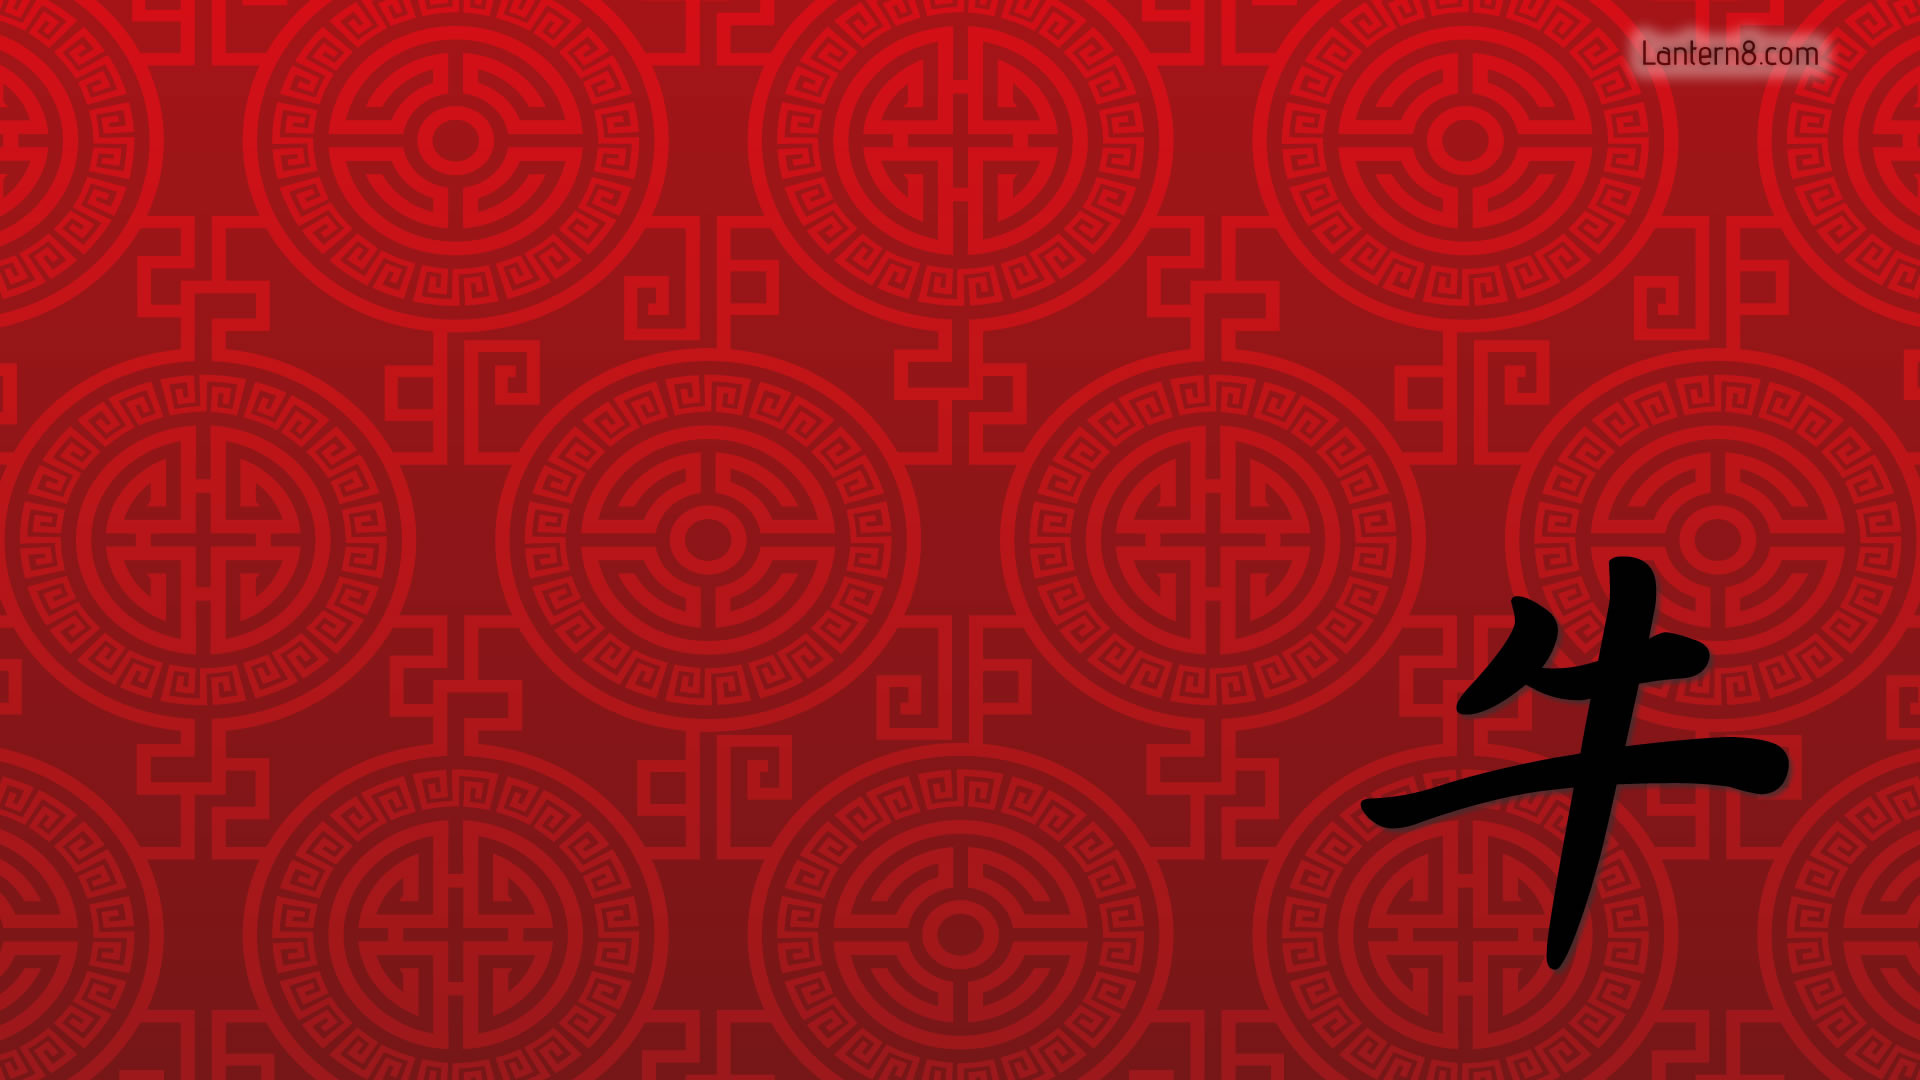 Res: 1920x1080, Mao Zedong was a communist leader in China who caused a lot of disasters,  like the great leap forward and the cultural revolution.